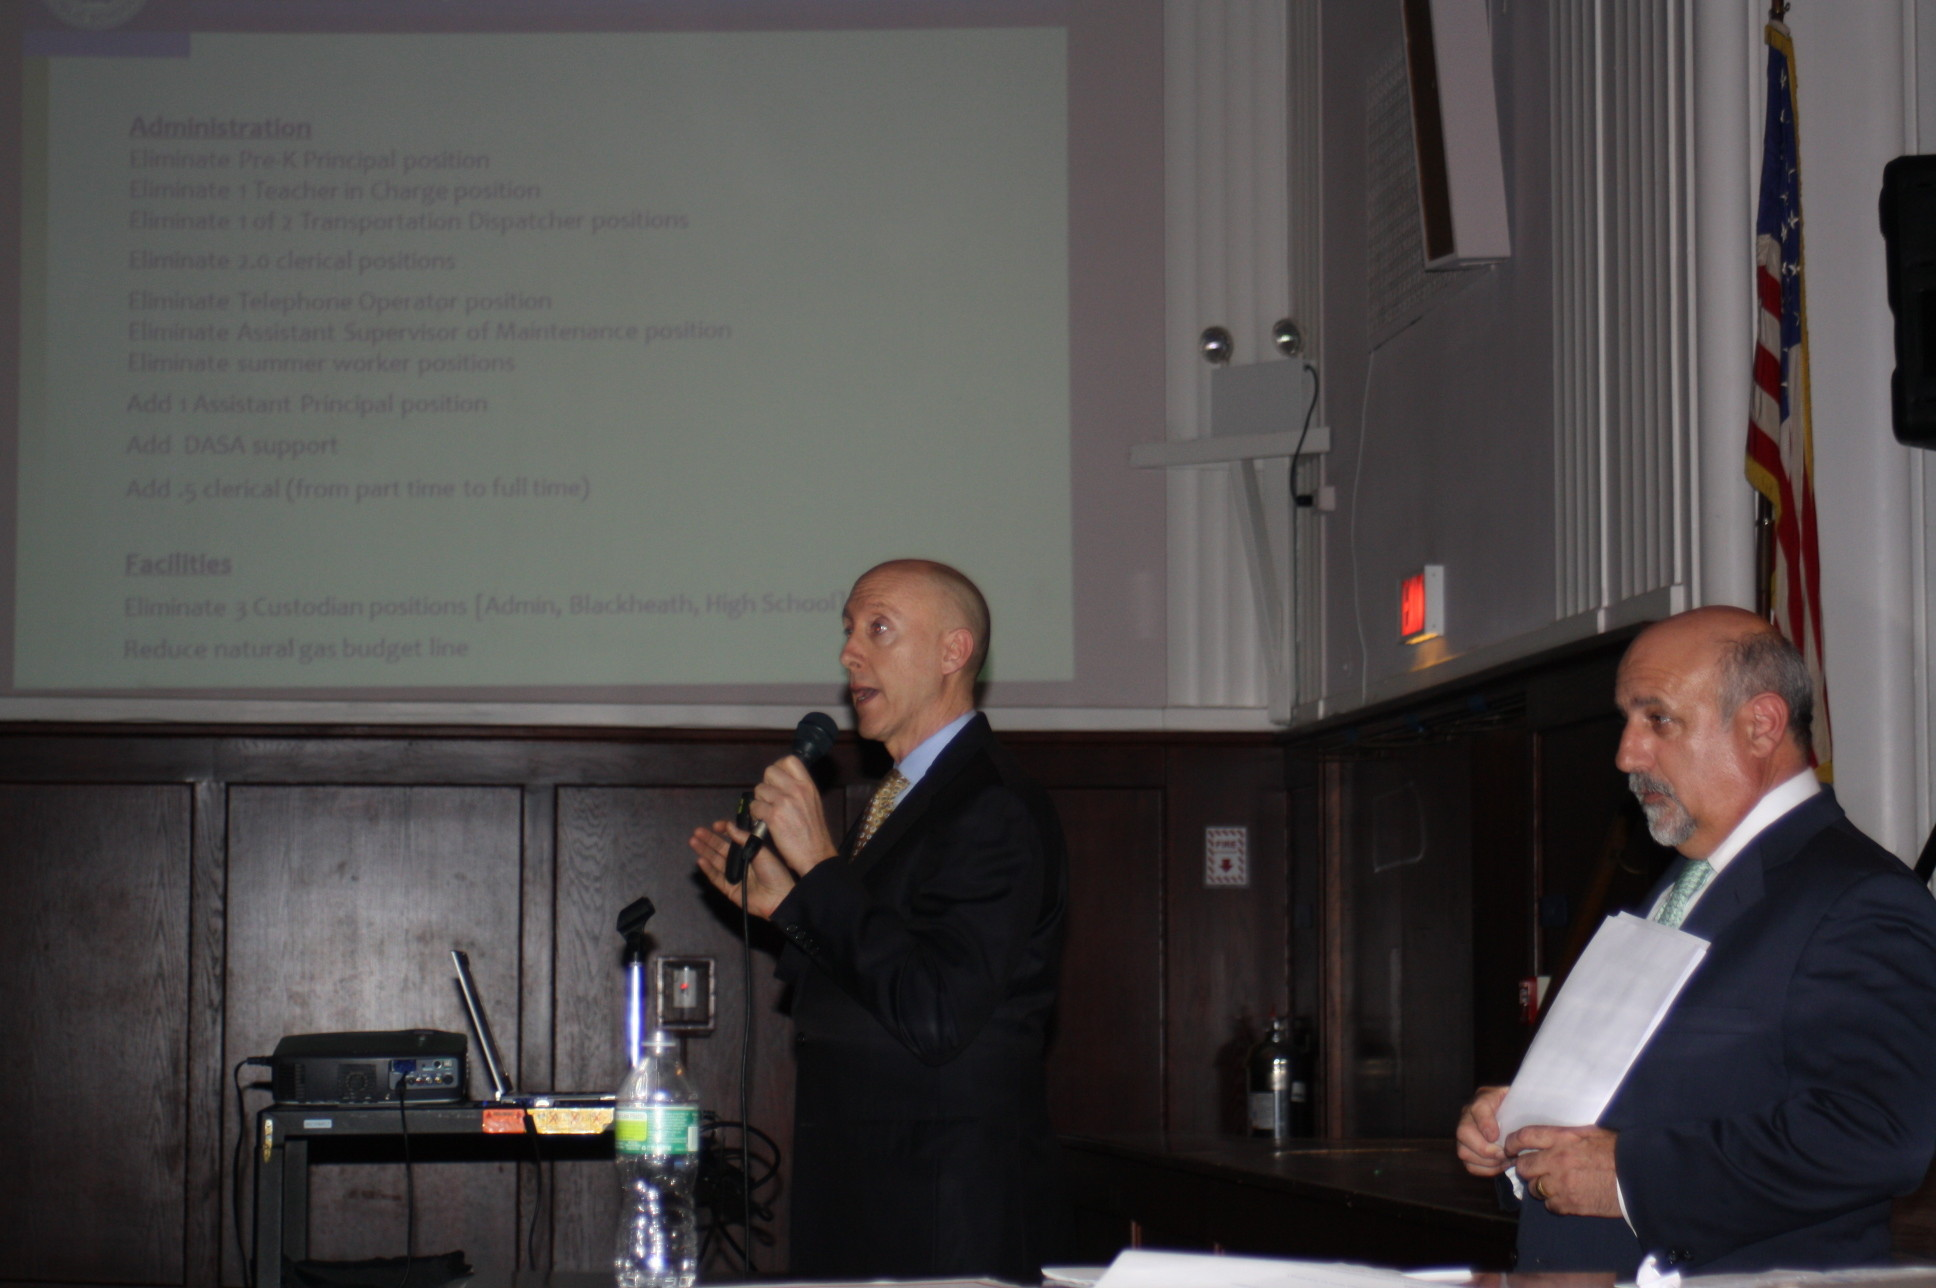 Chief Operating Officer Michael DeVito, left, and Superintendent David Wiess presented the final draft of the proposed 2013-14 school budget to residents last week.